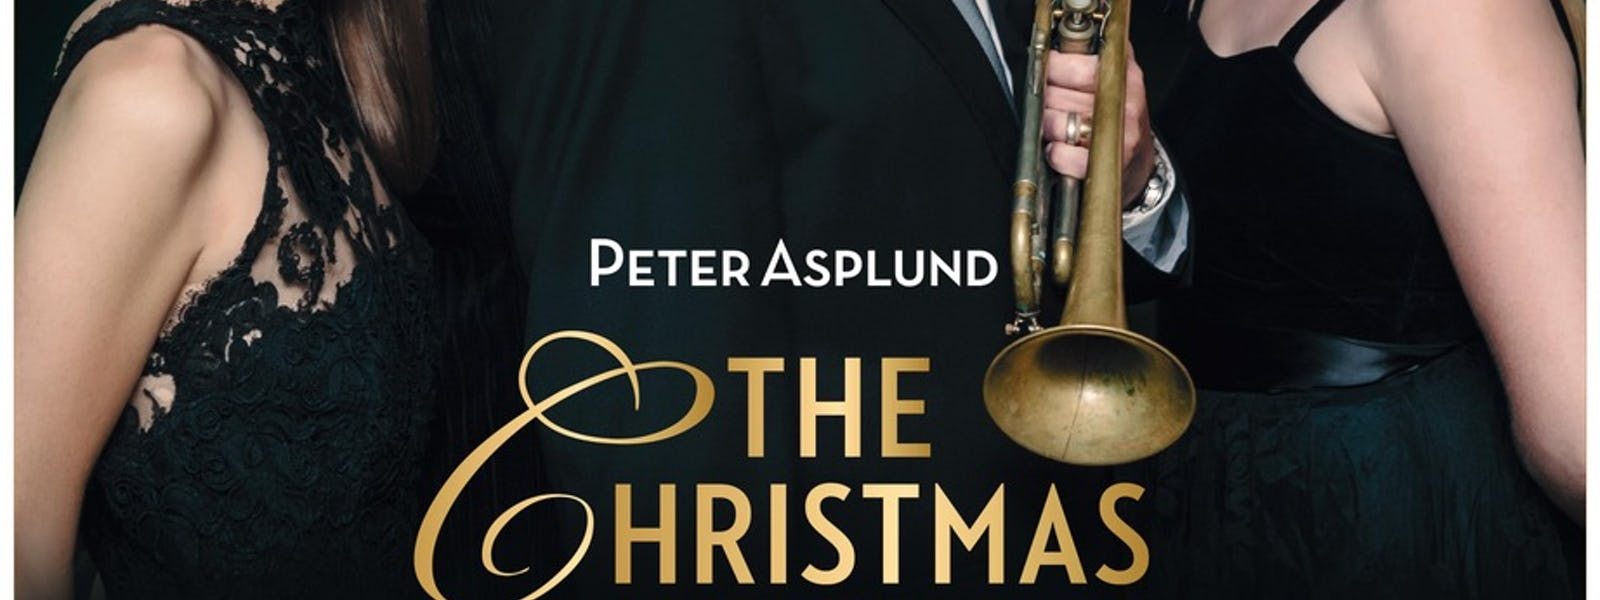 Bild - Peter Asplund Big Band Show